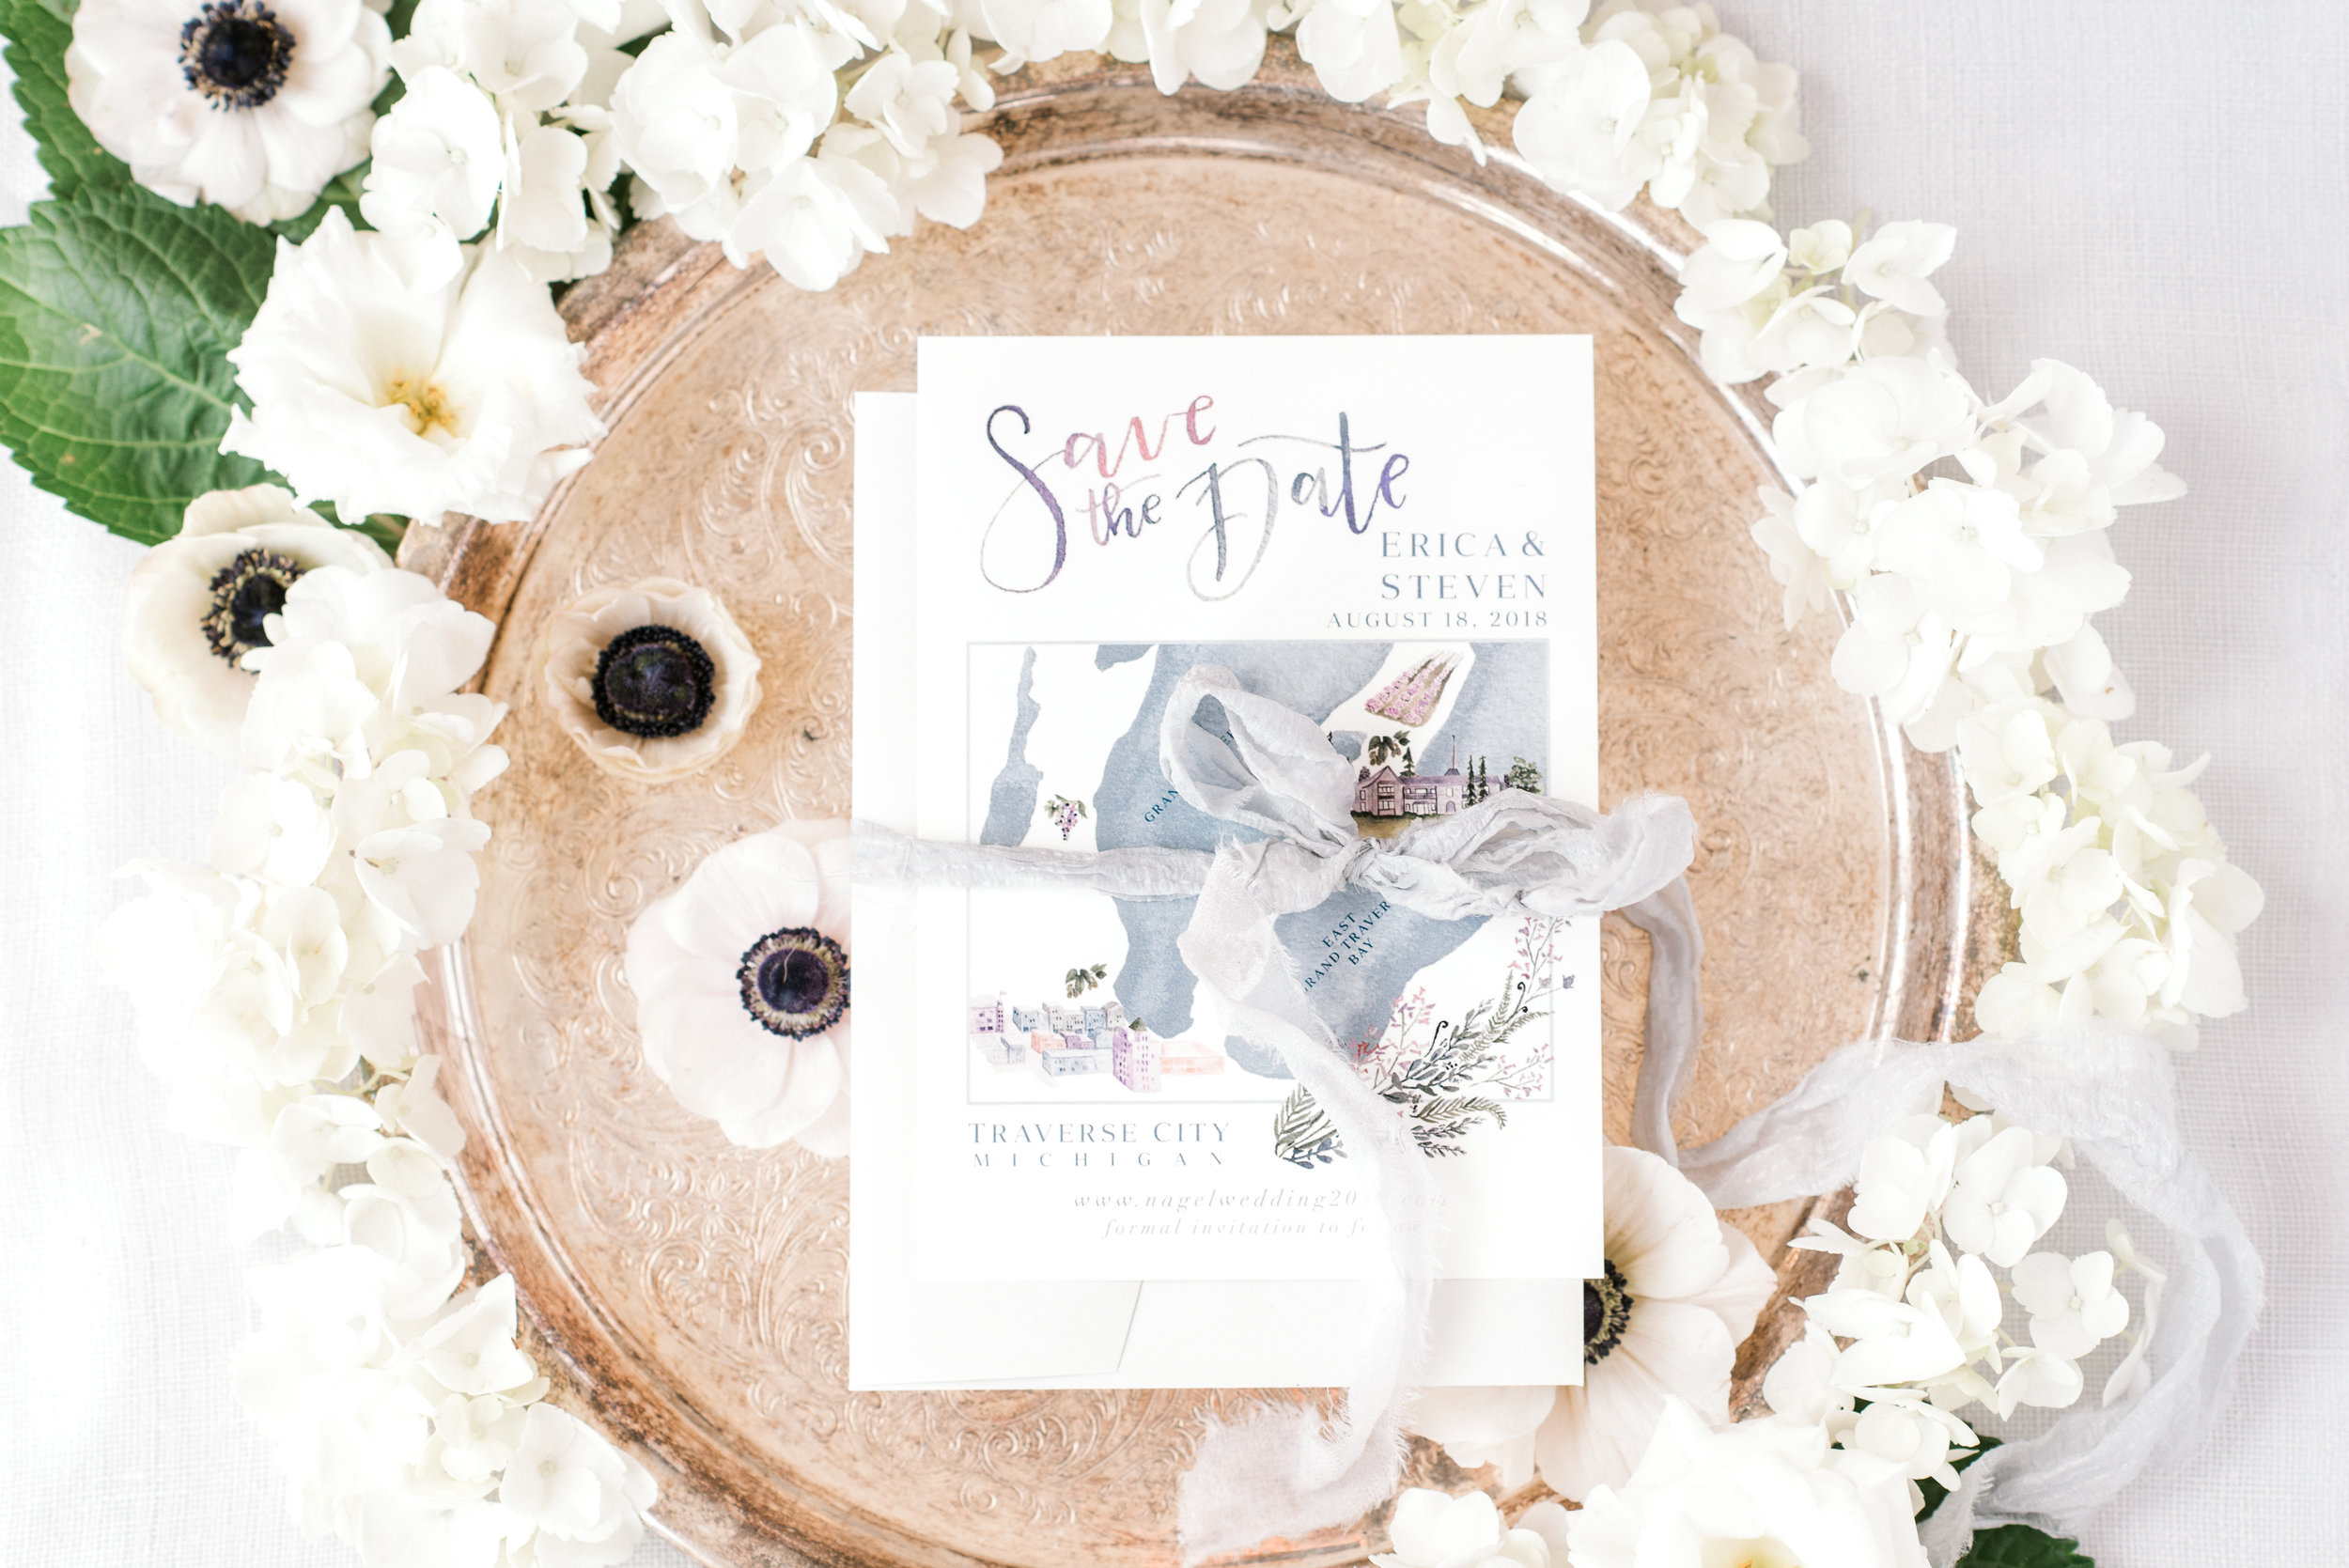 Custom Save the Date by Sable and Gray.jpg